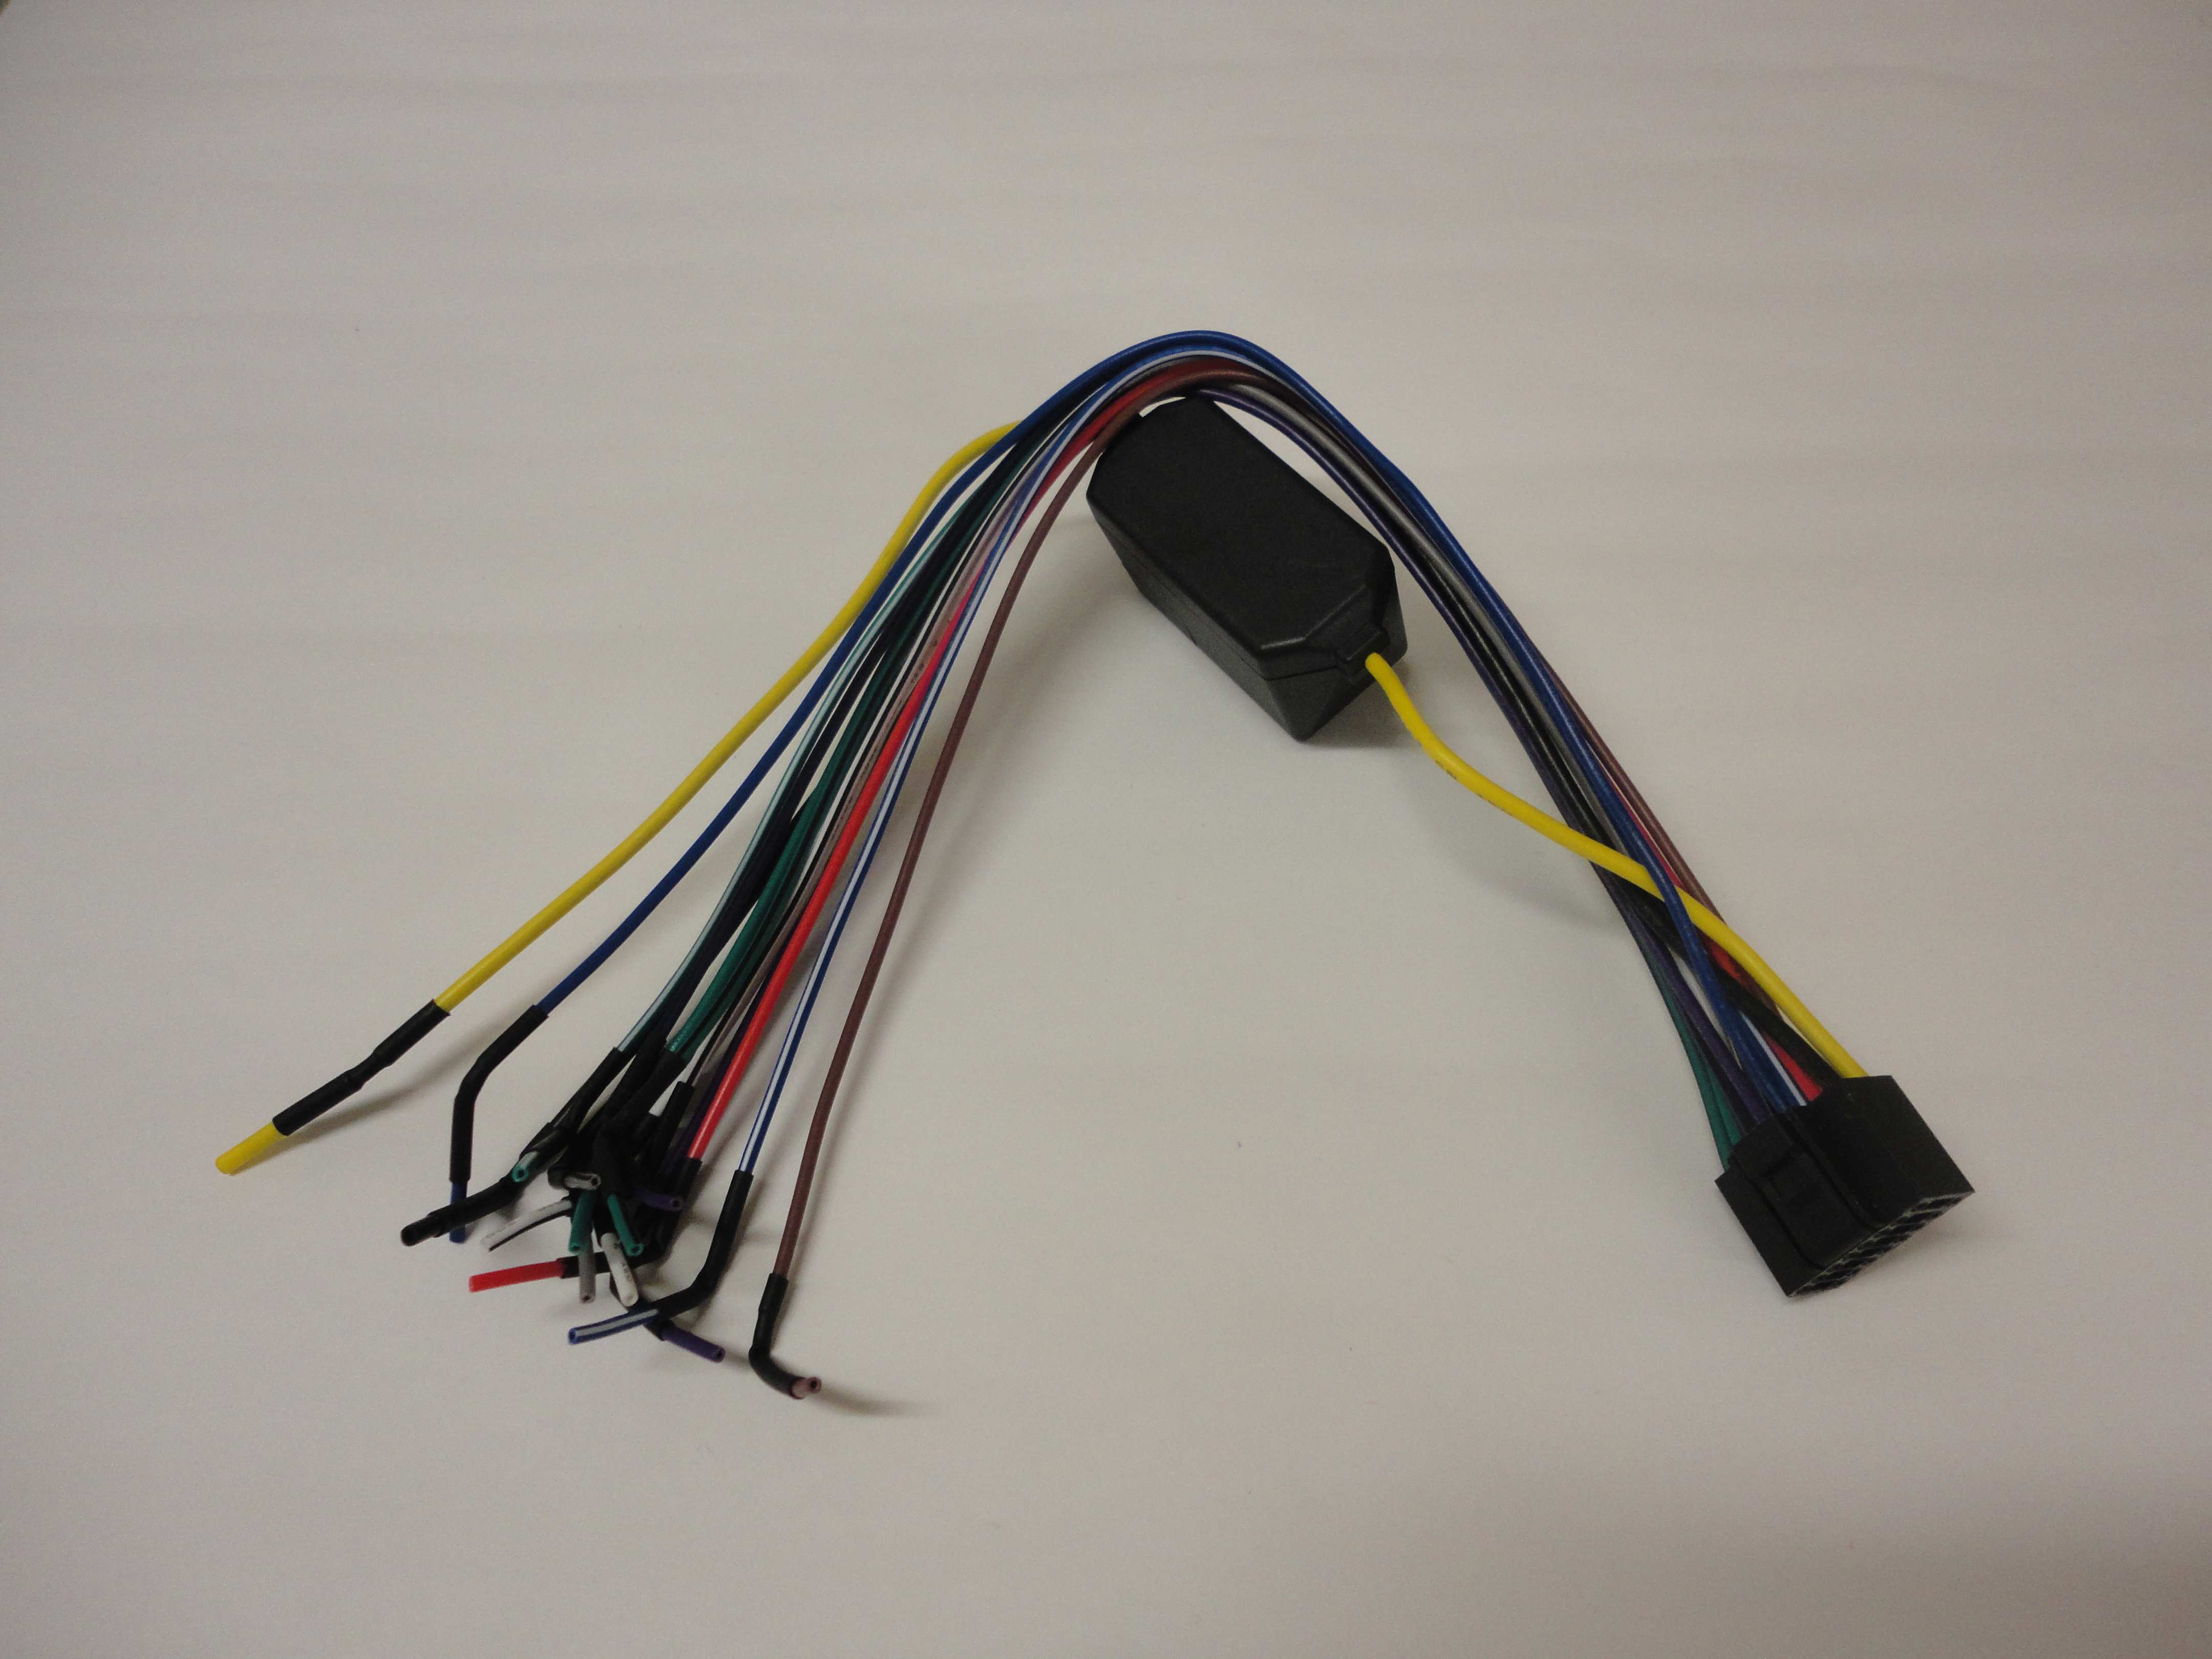 vx7020 30313880 ph?w=263&h=198 jensen replacement parts cm technical support jensen vx6020 wiring harness at n-0.co